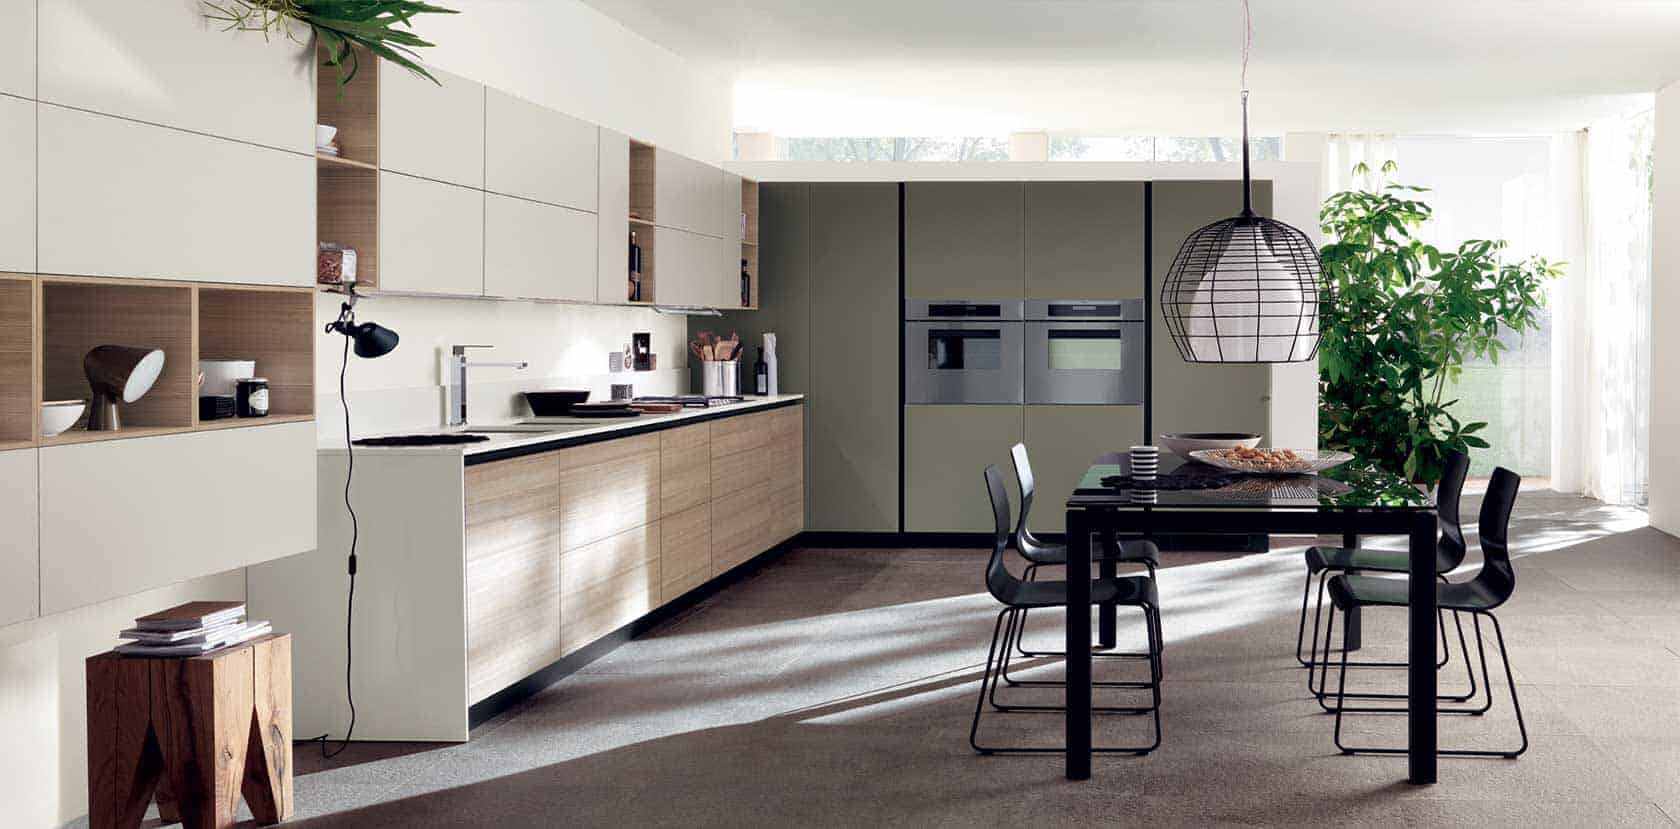 designer kitchens melbourne modern kitchen designs melbourne 763